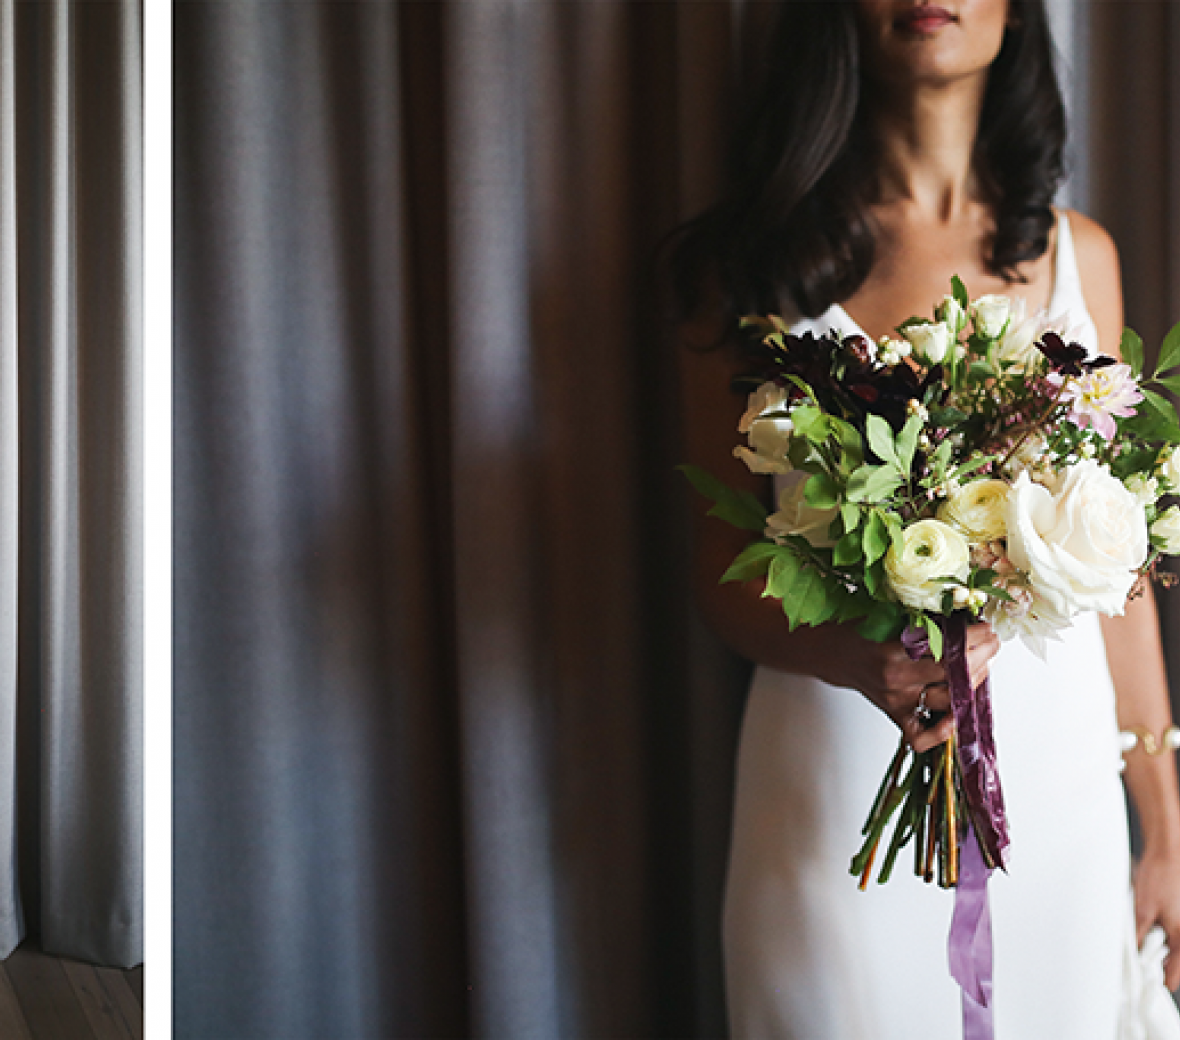 A bride in a long white dress with a bouquet in front of charcoal grey curtain.